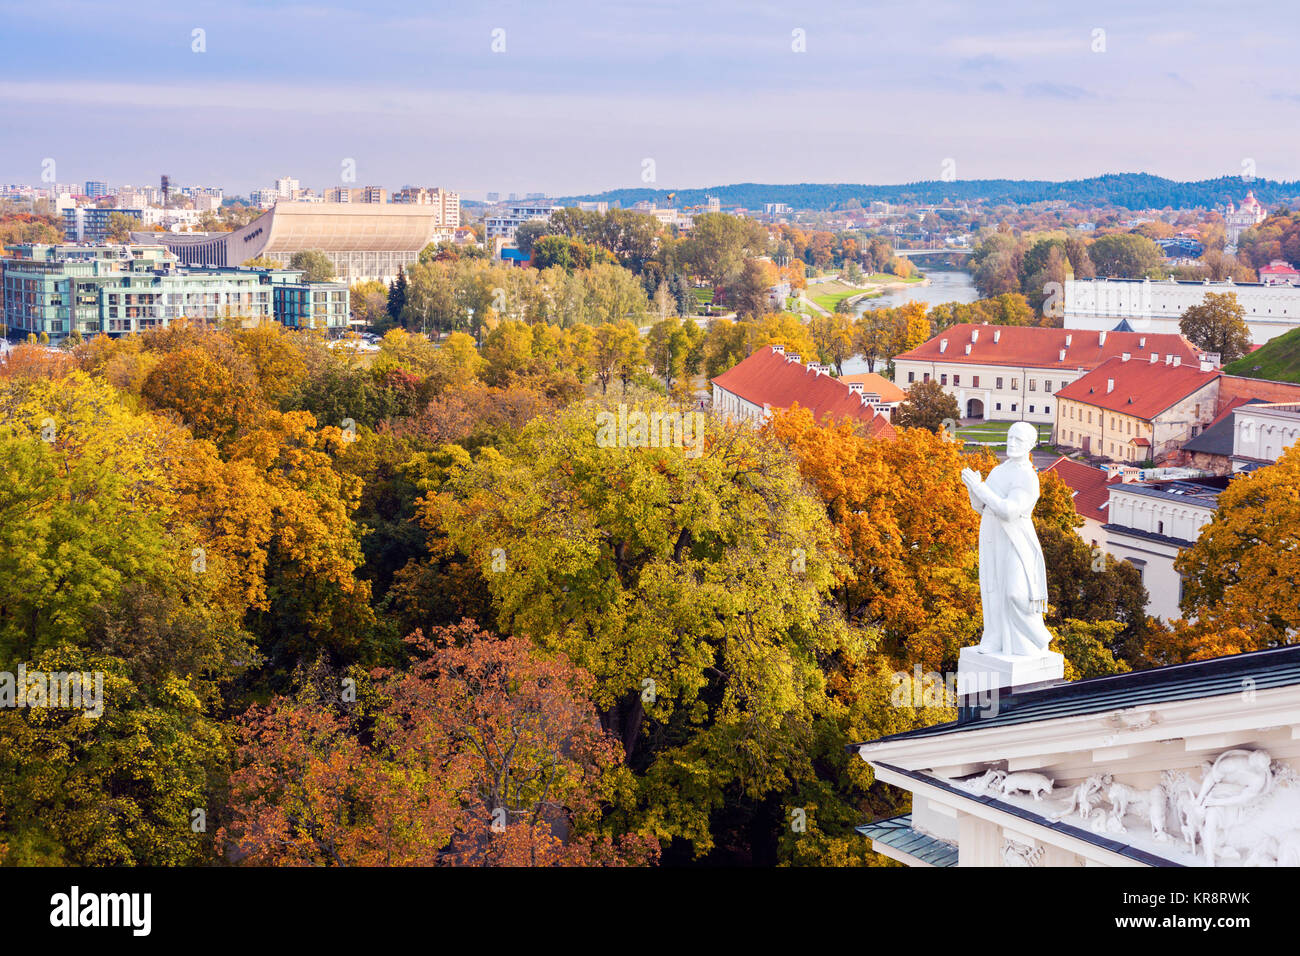 Lithuania, Vilnius, Statue on roof with cityscape in background - Stock Image